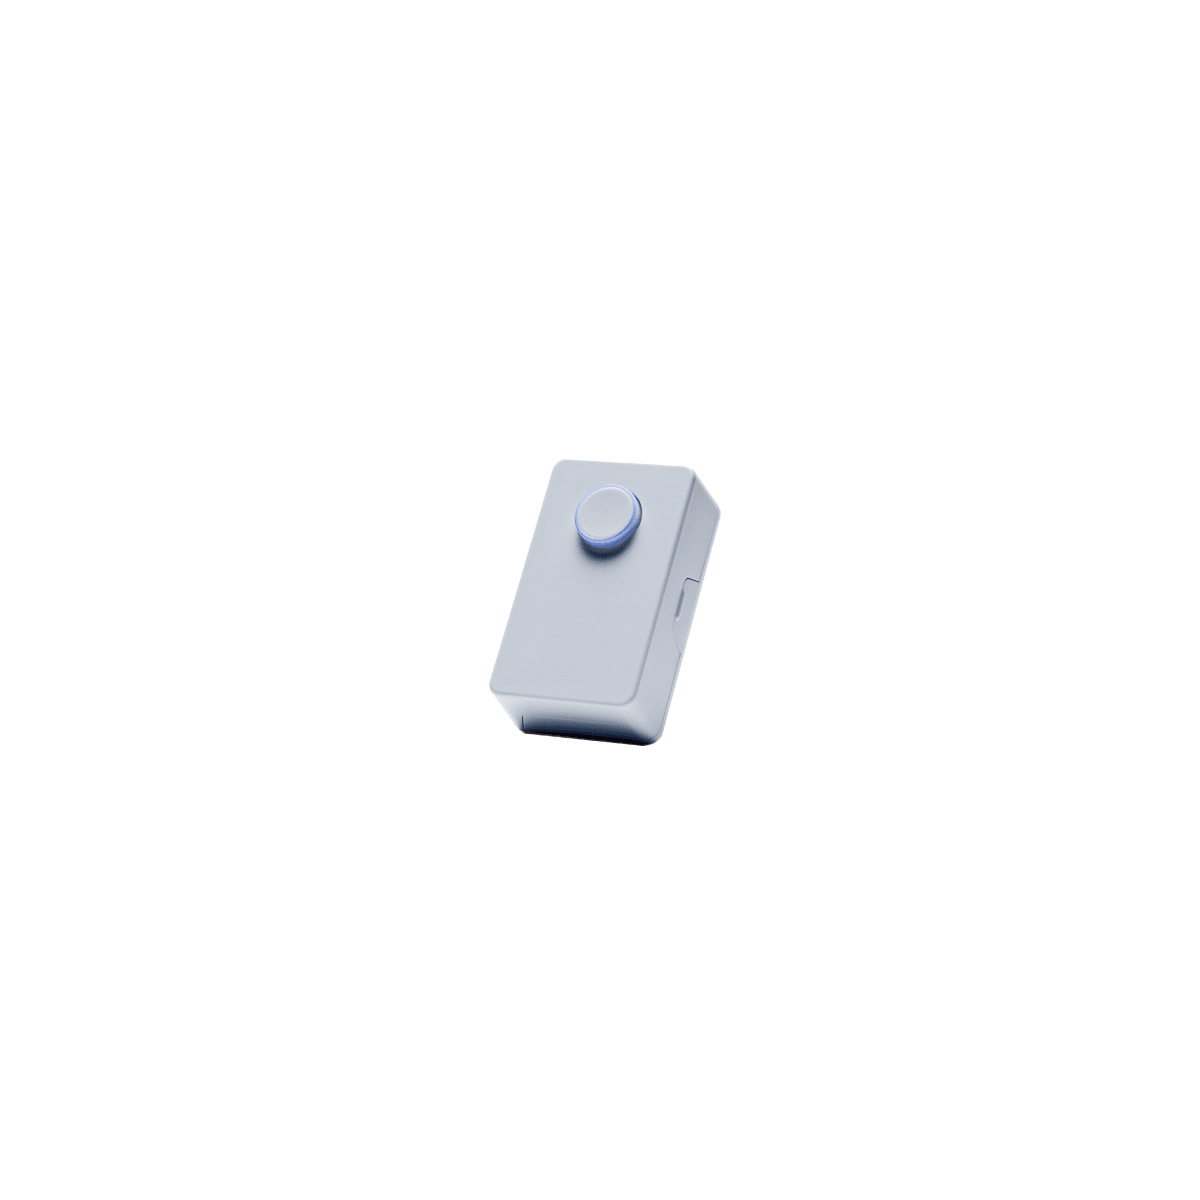 Rinnai RWMPB01 Wireless Remote Hot Water Demand Button N//A